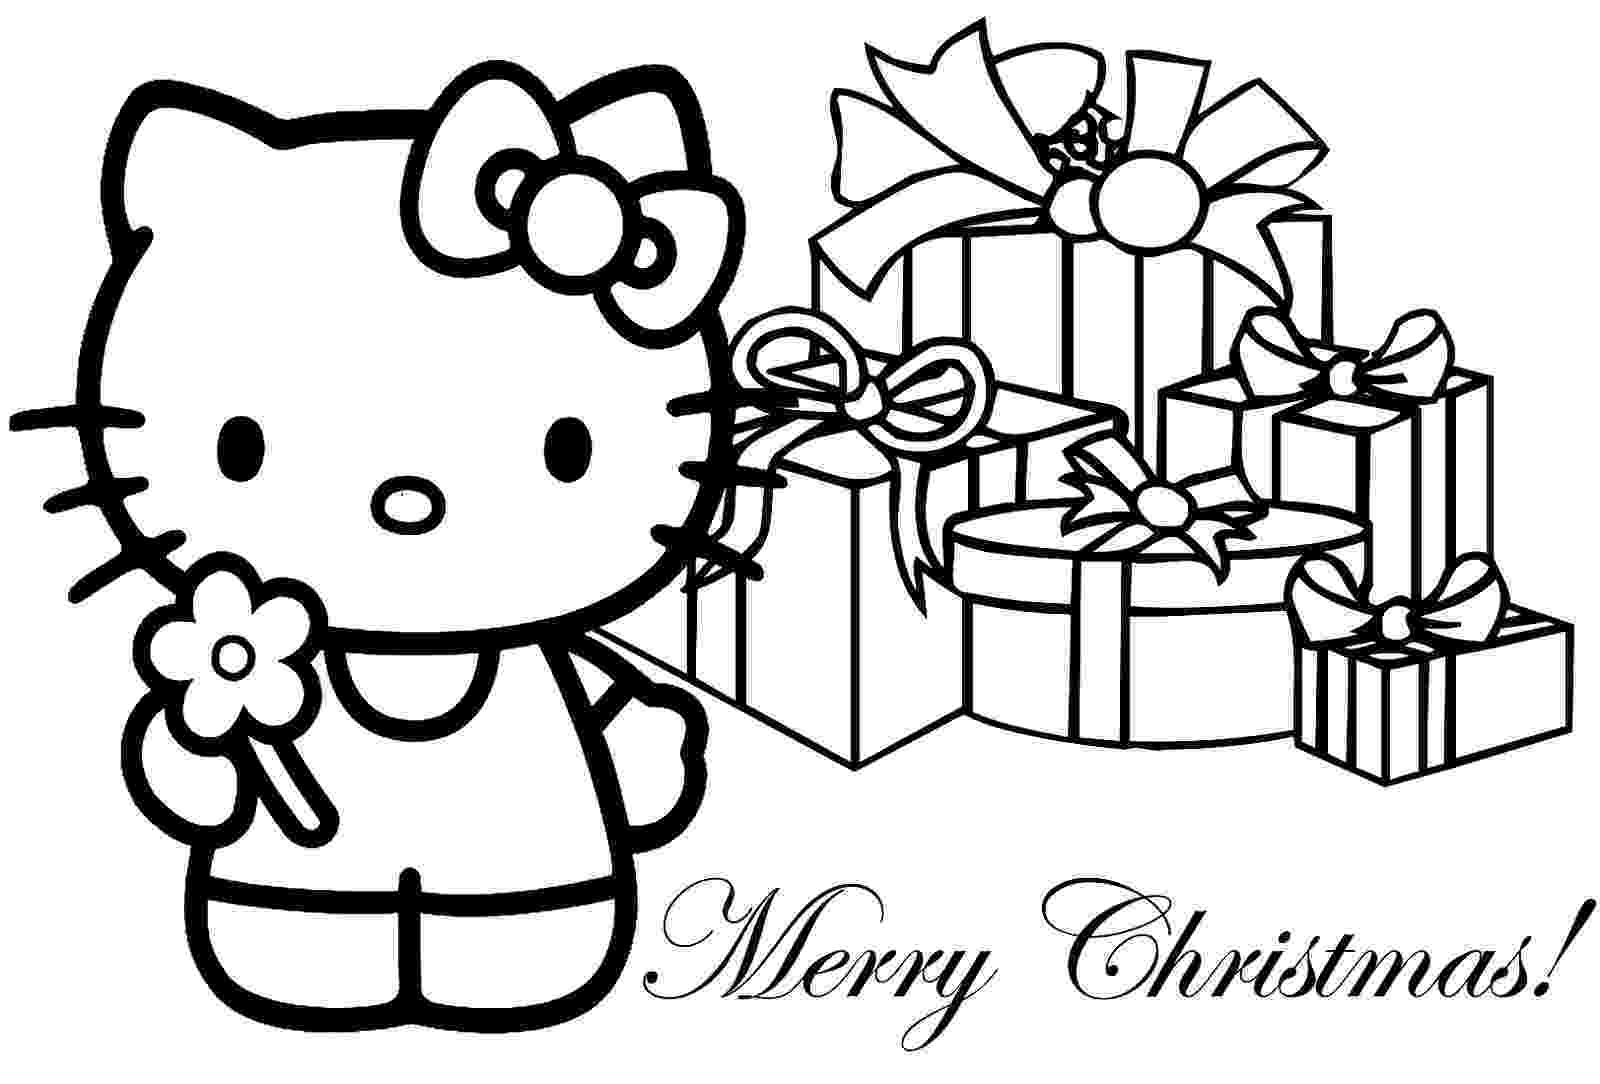 christmas coloring pages to print free free printable merry christmas coloring pages coloring print to free pages christmas